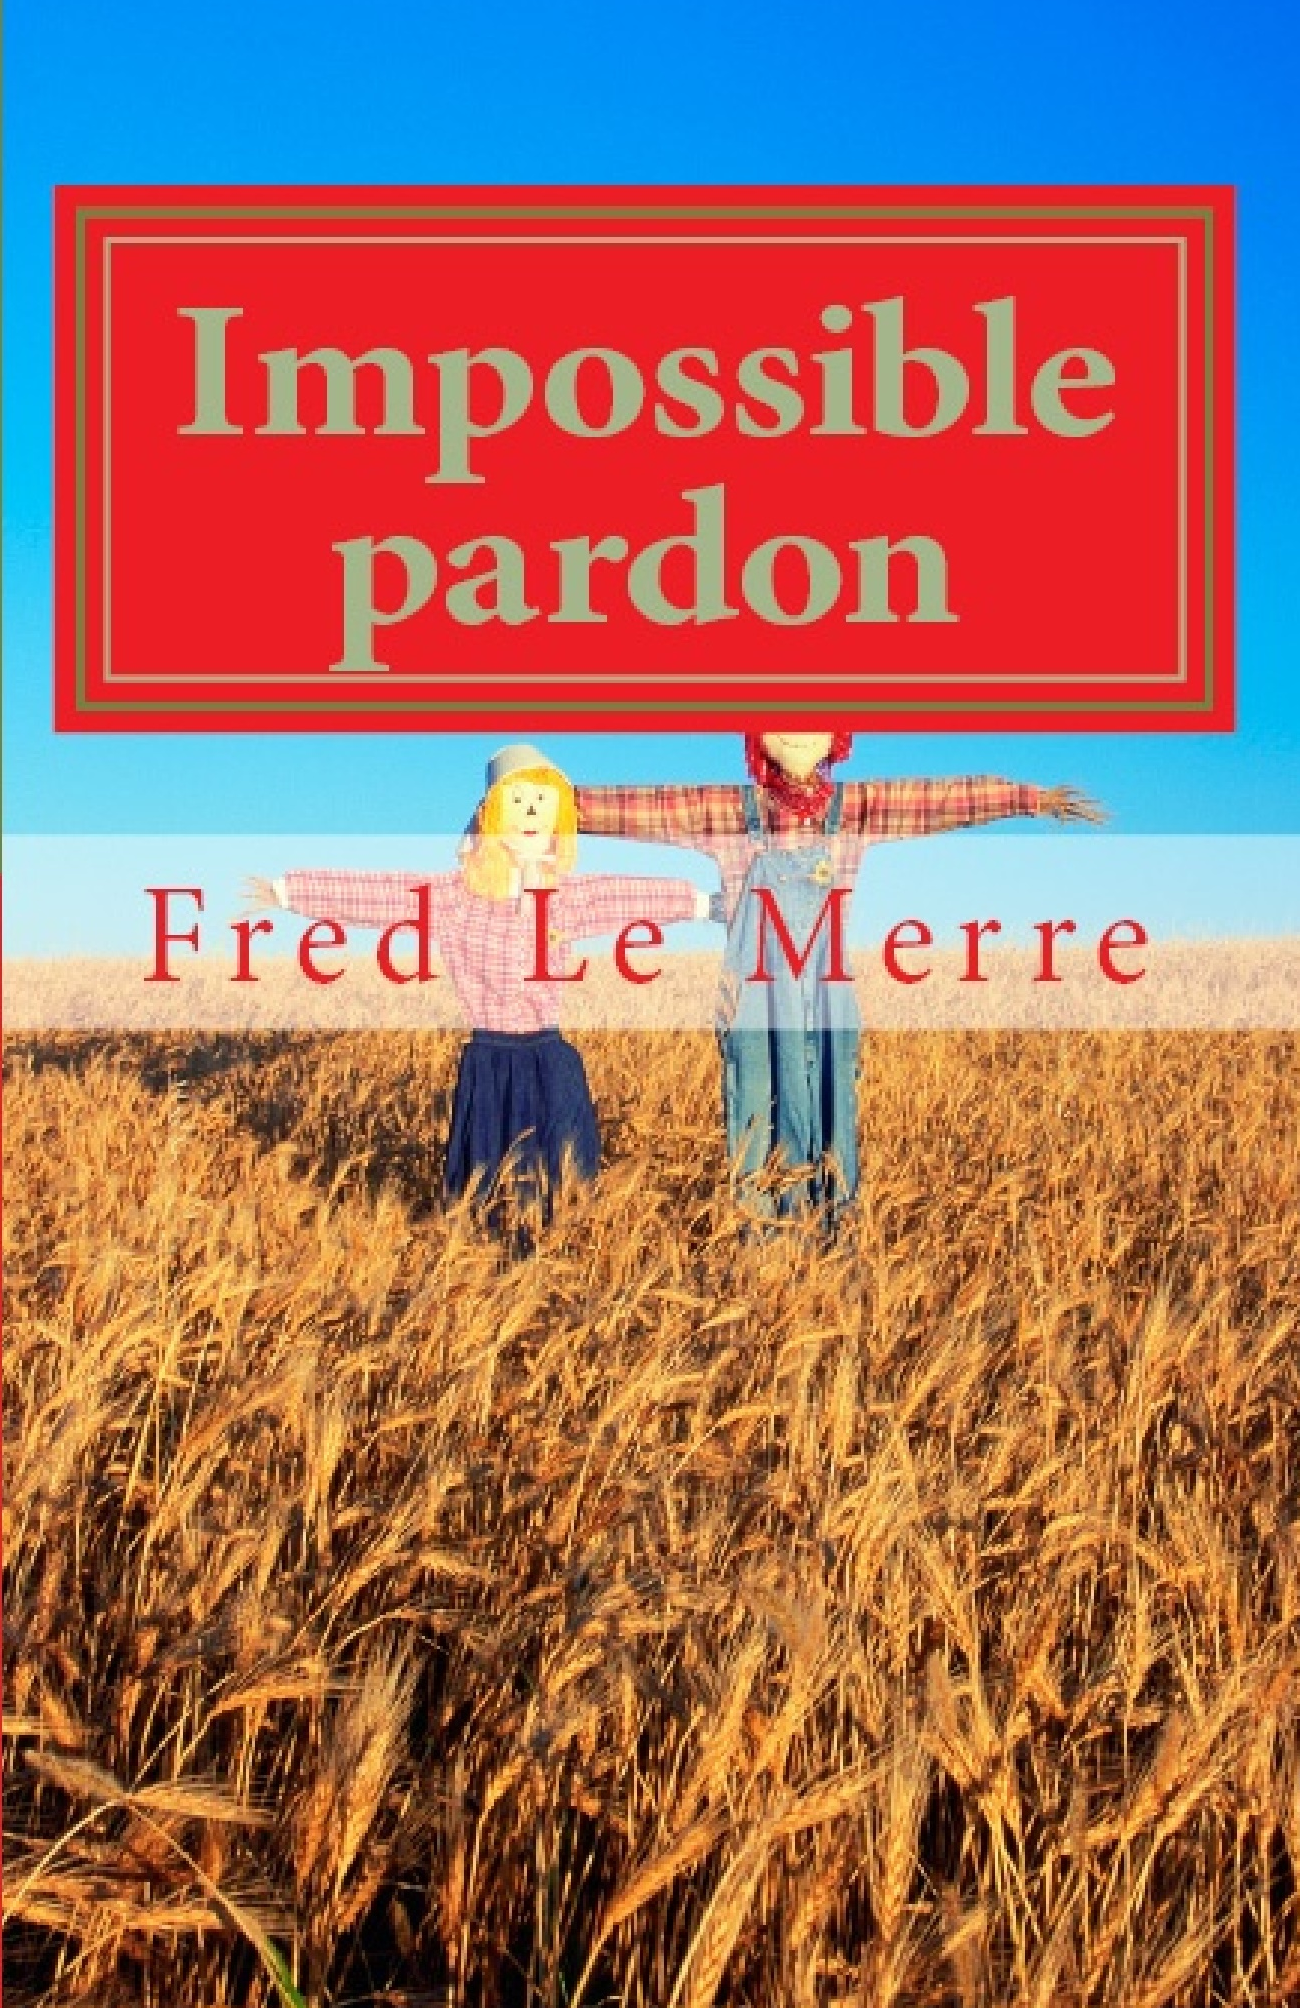 Impossible pardon